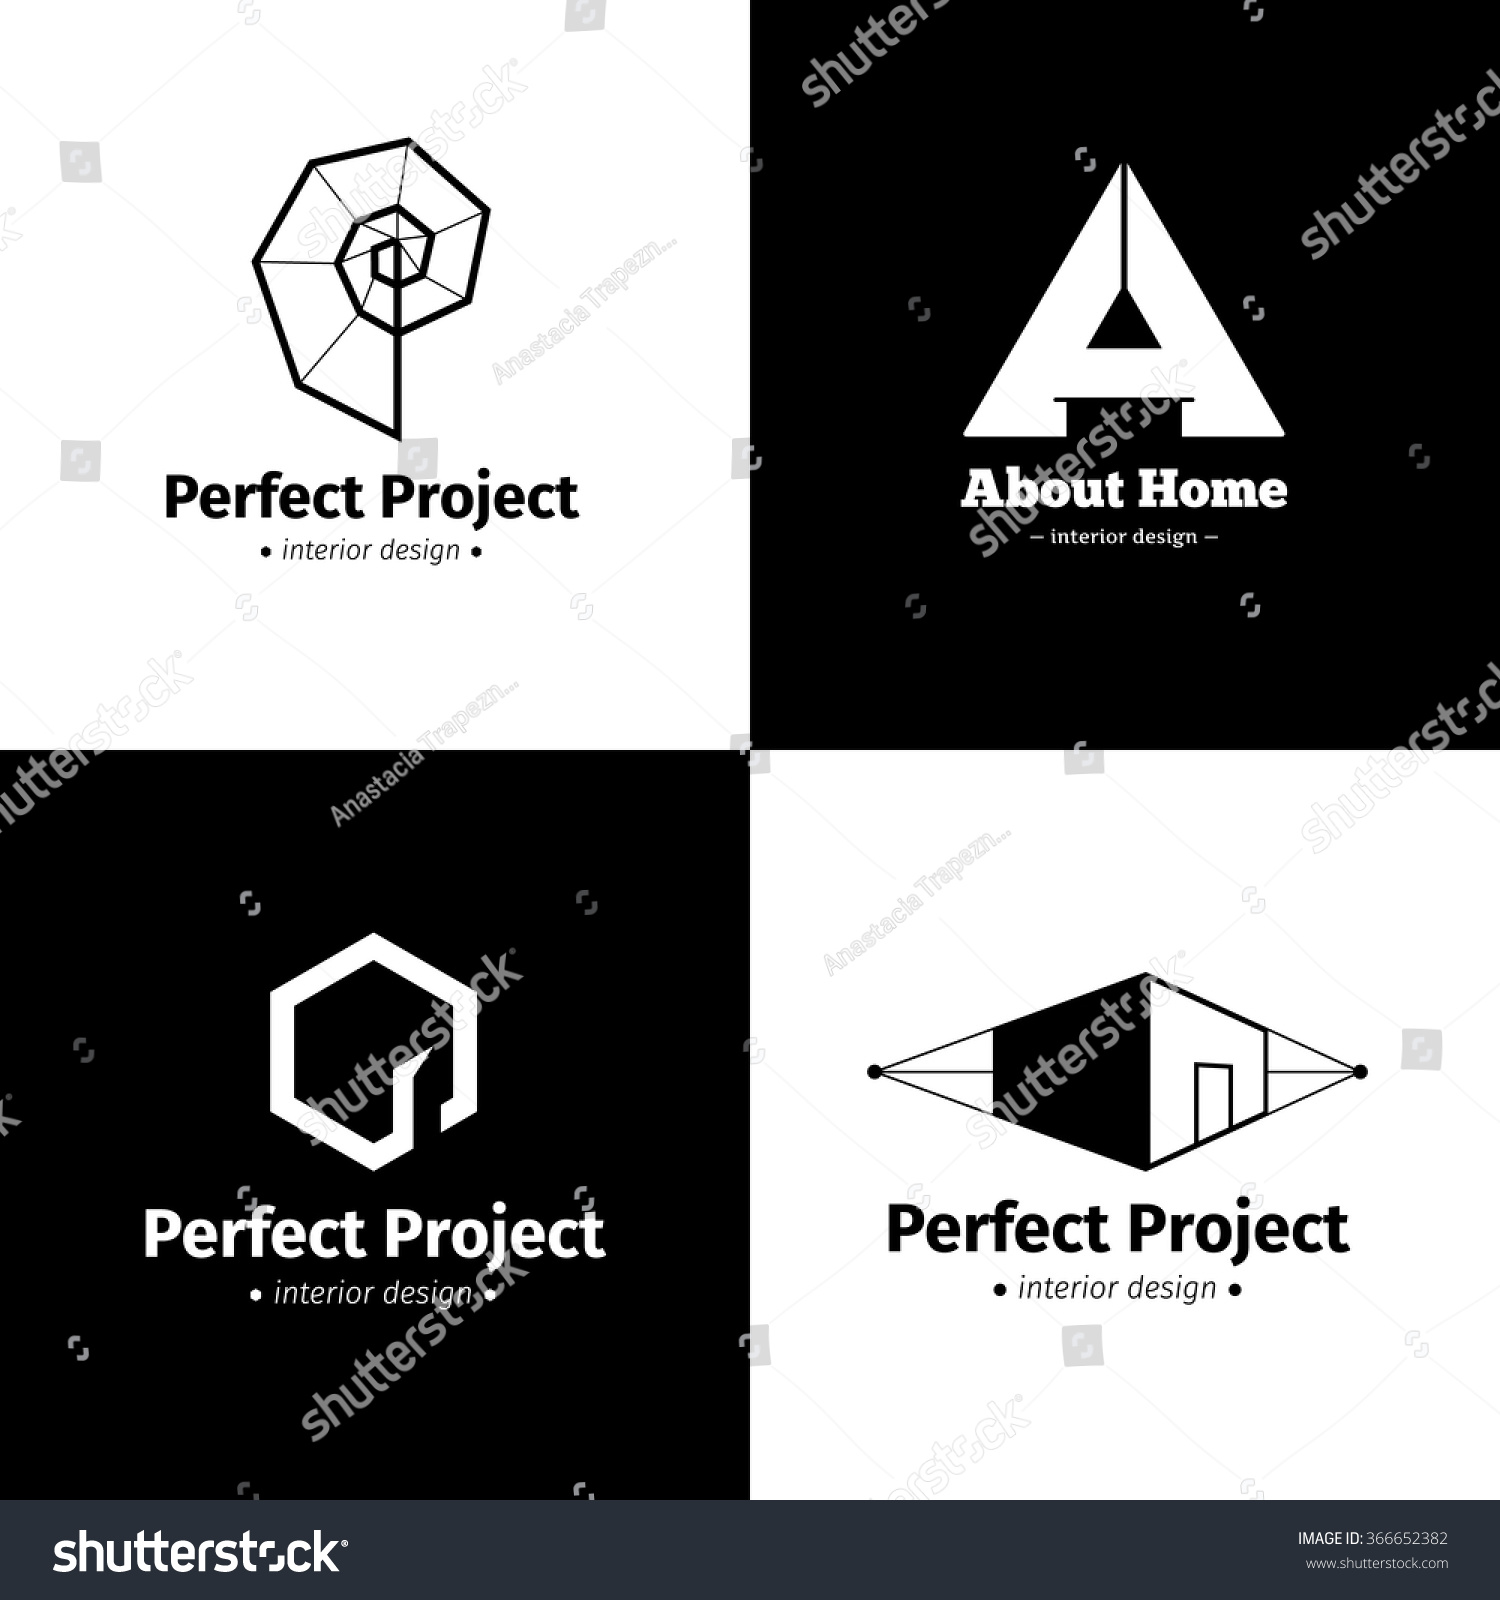 Vector Set Of Four Minimalistic Interior Design Studio Logos Black And White Creative Logotypes